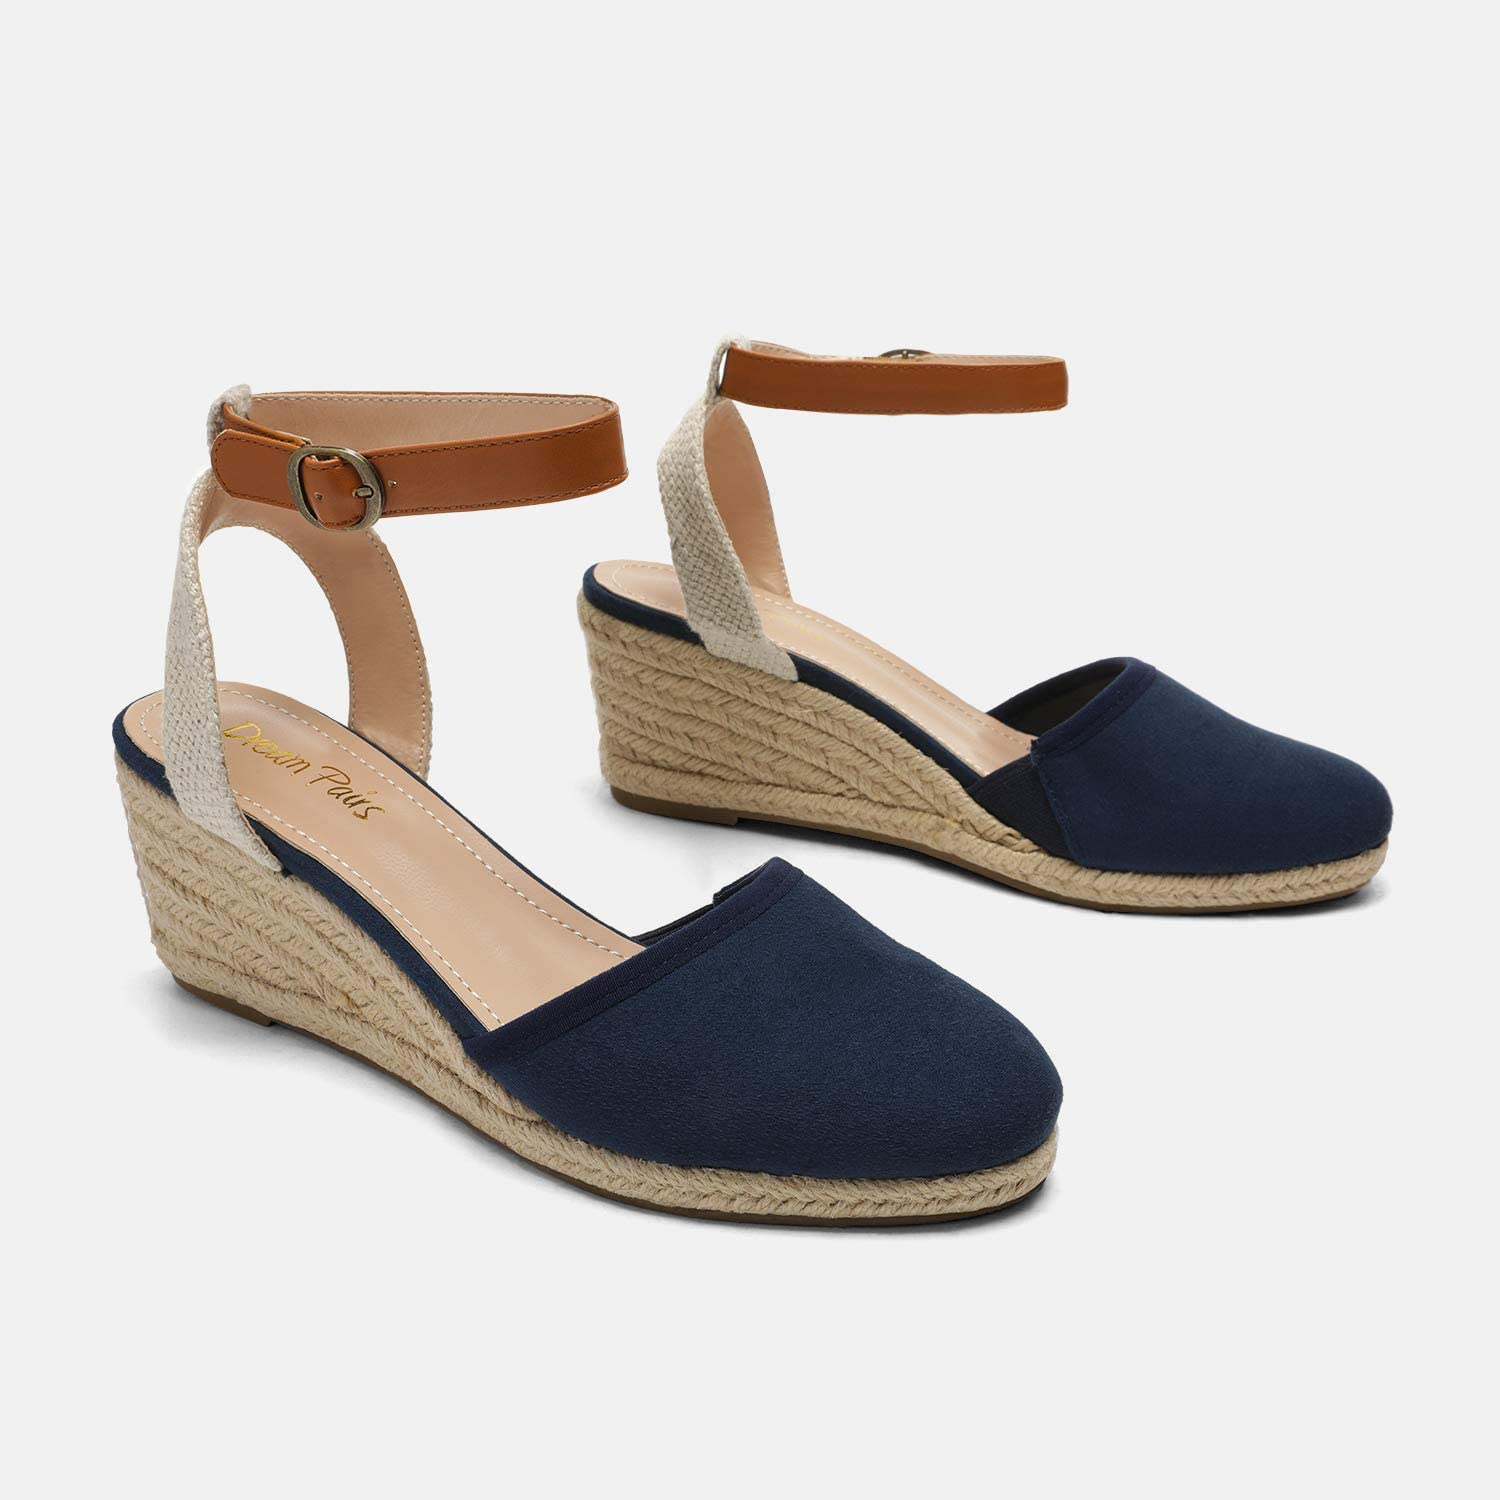 DREAM PAIRS Womens Ankle Strap Espadrilles Wedge Sandals